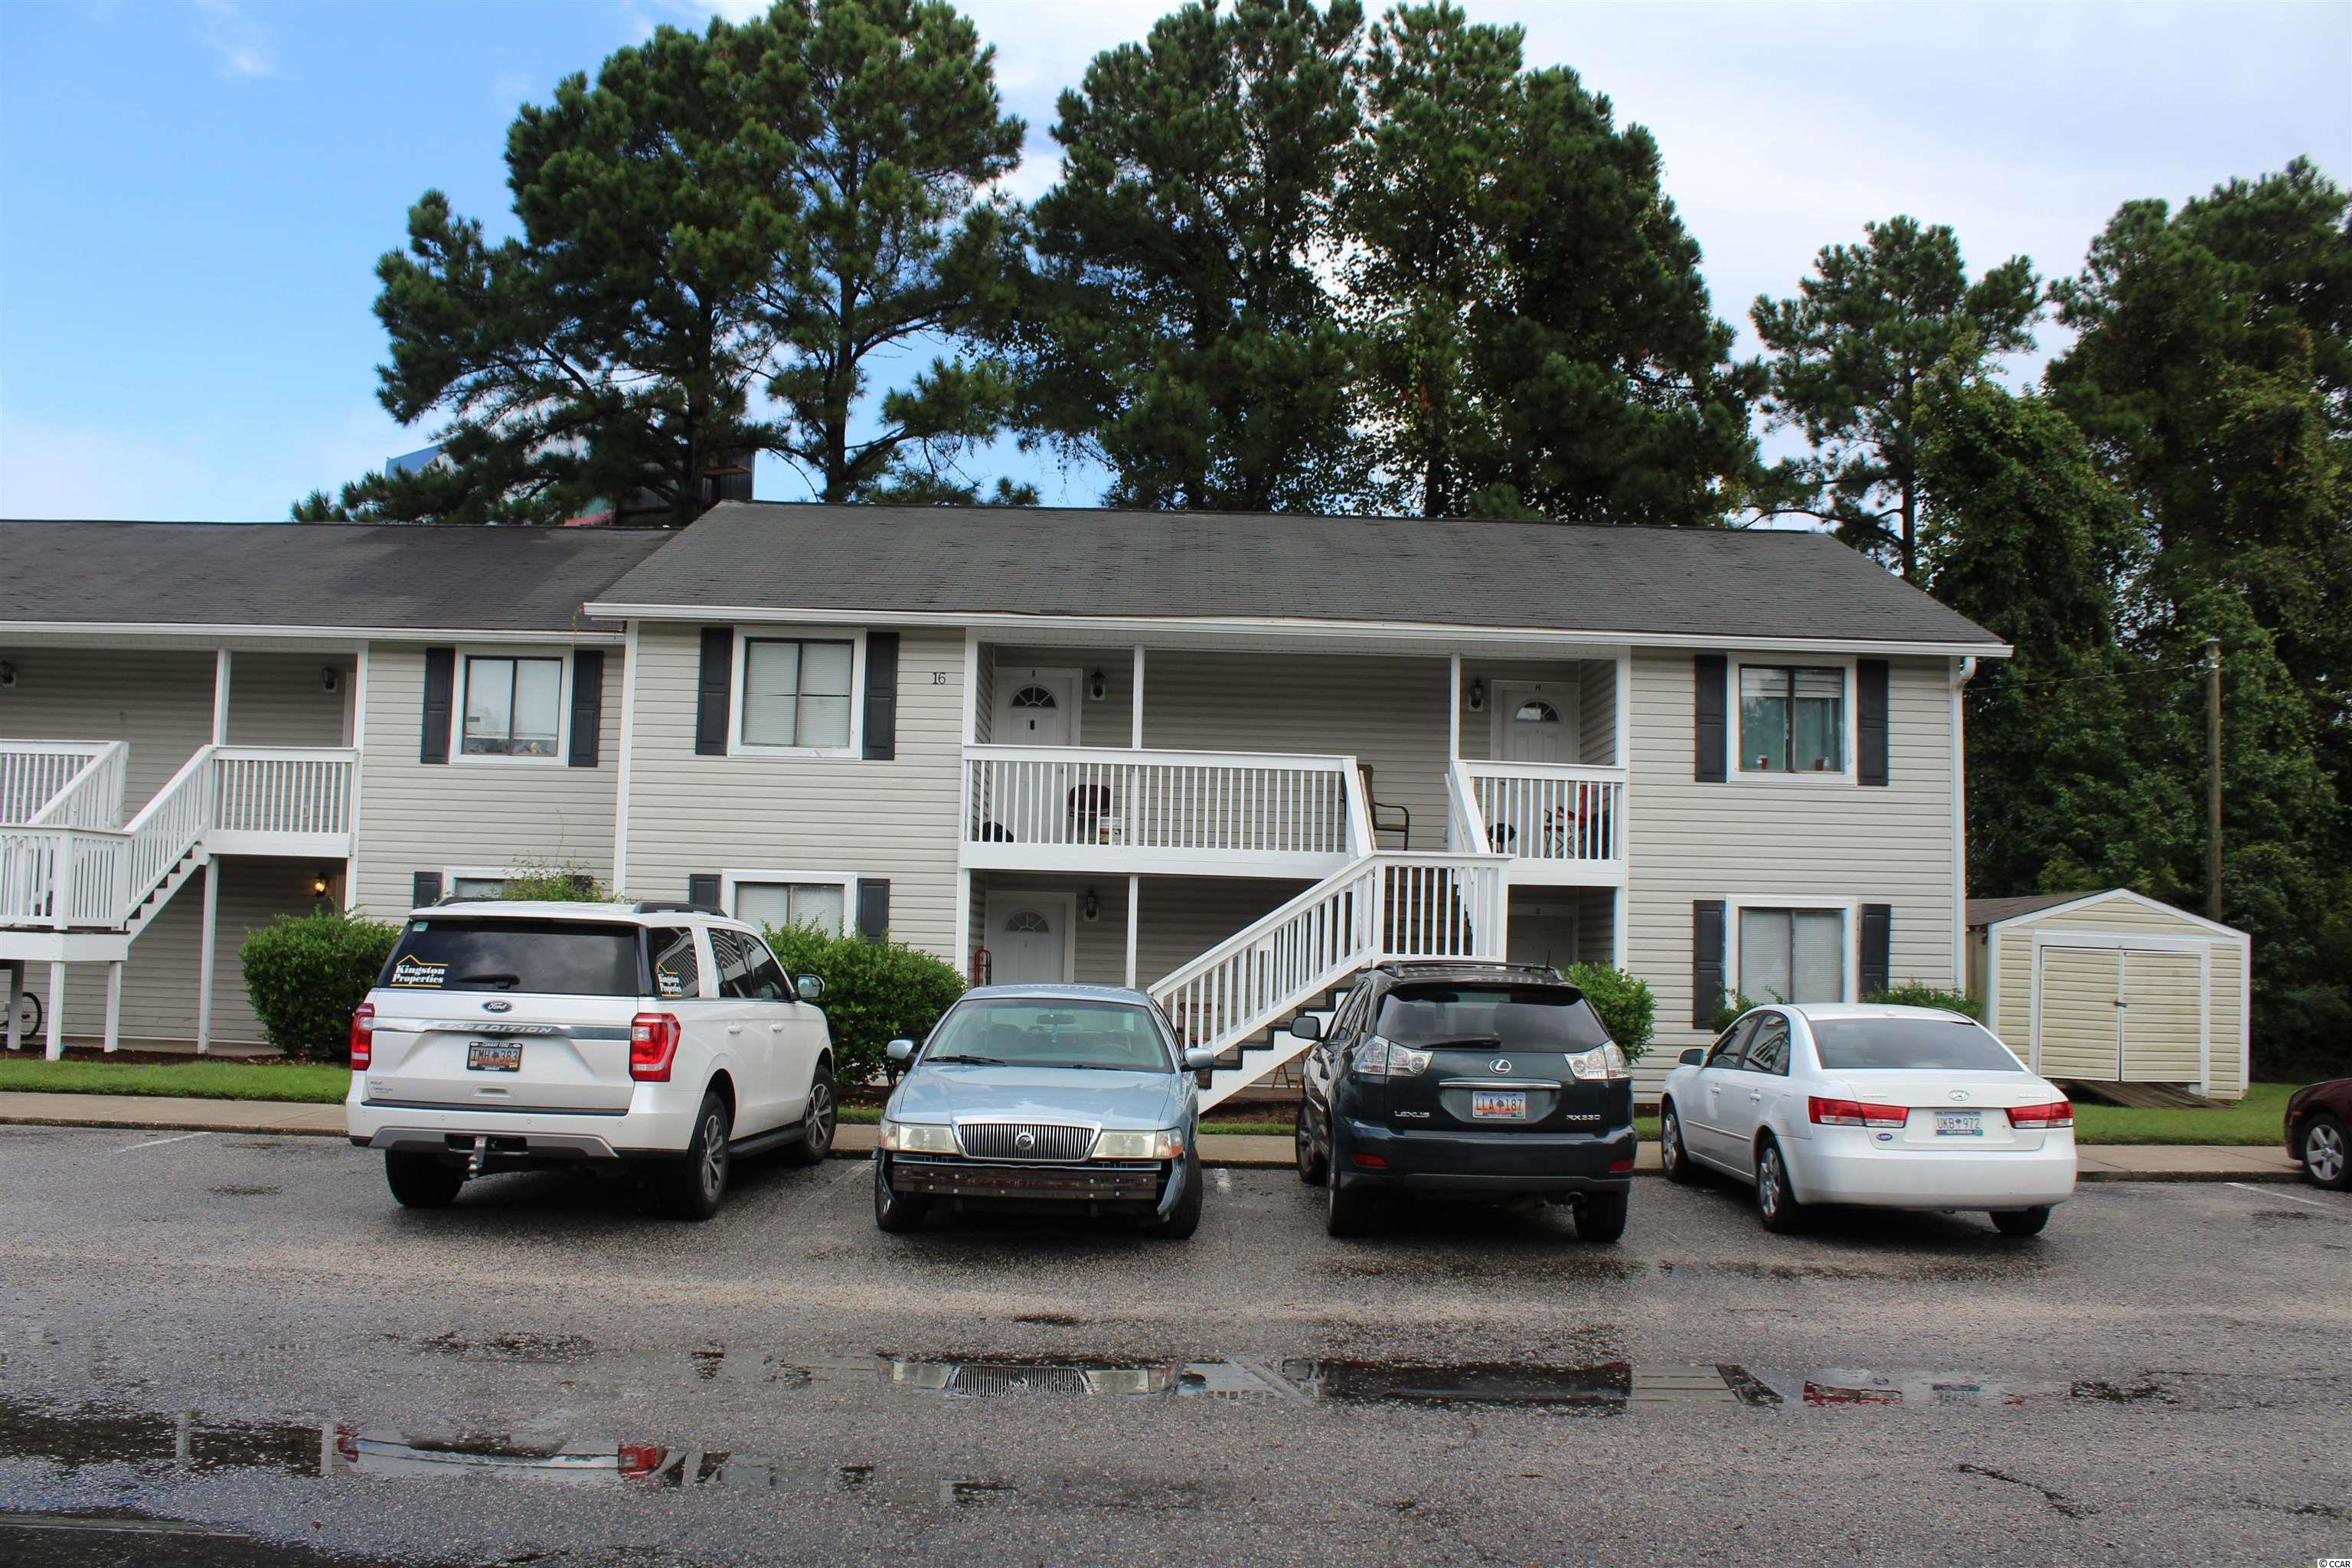 Great investment property. There is a tenant in place, instant cash flow. Close to Coastal Carolina University and Horry/Georgetown Tec. Two bedrooms and two baths, first floor unit.  Coastal Villas amenities include an outdoor pool and an on site Laundromat. Only minutes to downtown Conway and the  Waccamaw River-Walk, near shopping, dining, golf, and less than 12 miles from the beach. Schedule your showing today!